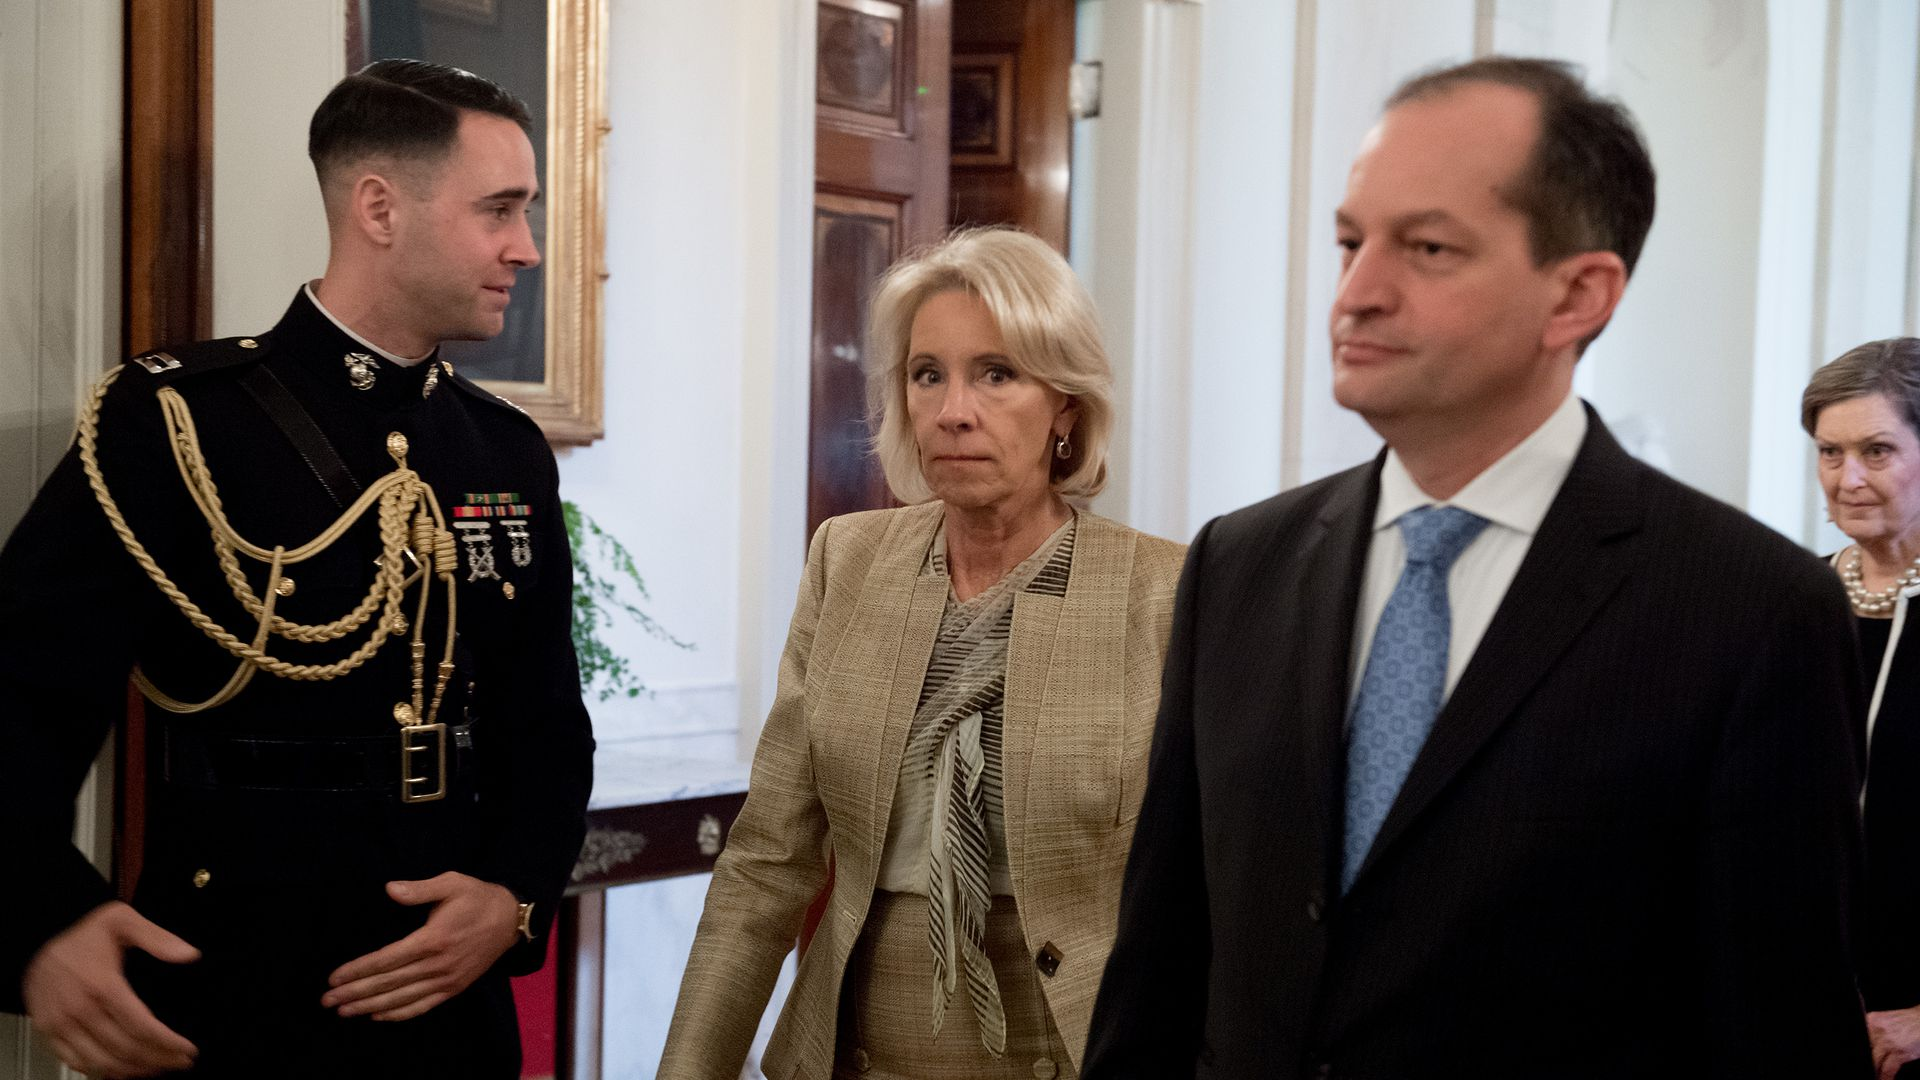 Secretary of Education Betsy DeVos and Secretary of Labor Alexander Acosta. Photo: Saul Loeb/AFP/Getty Images